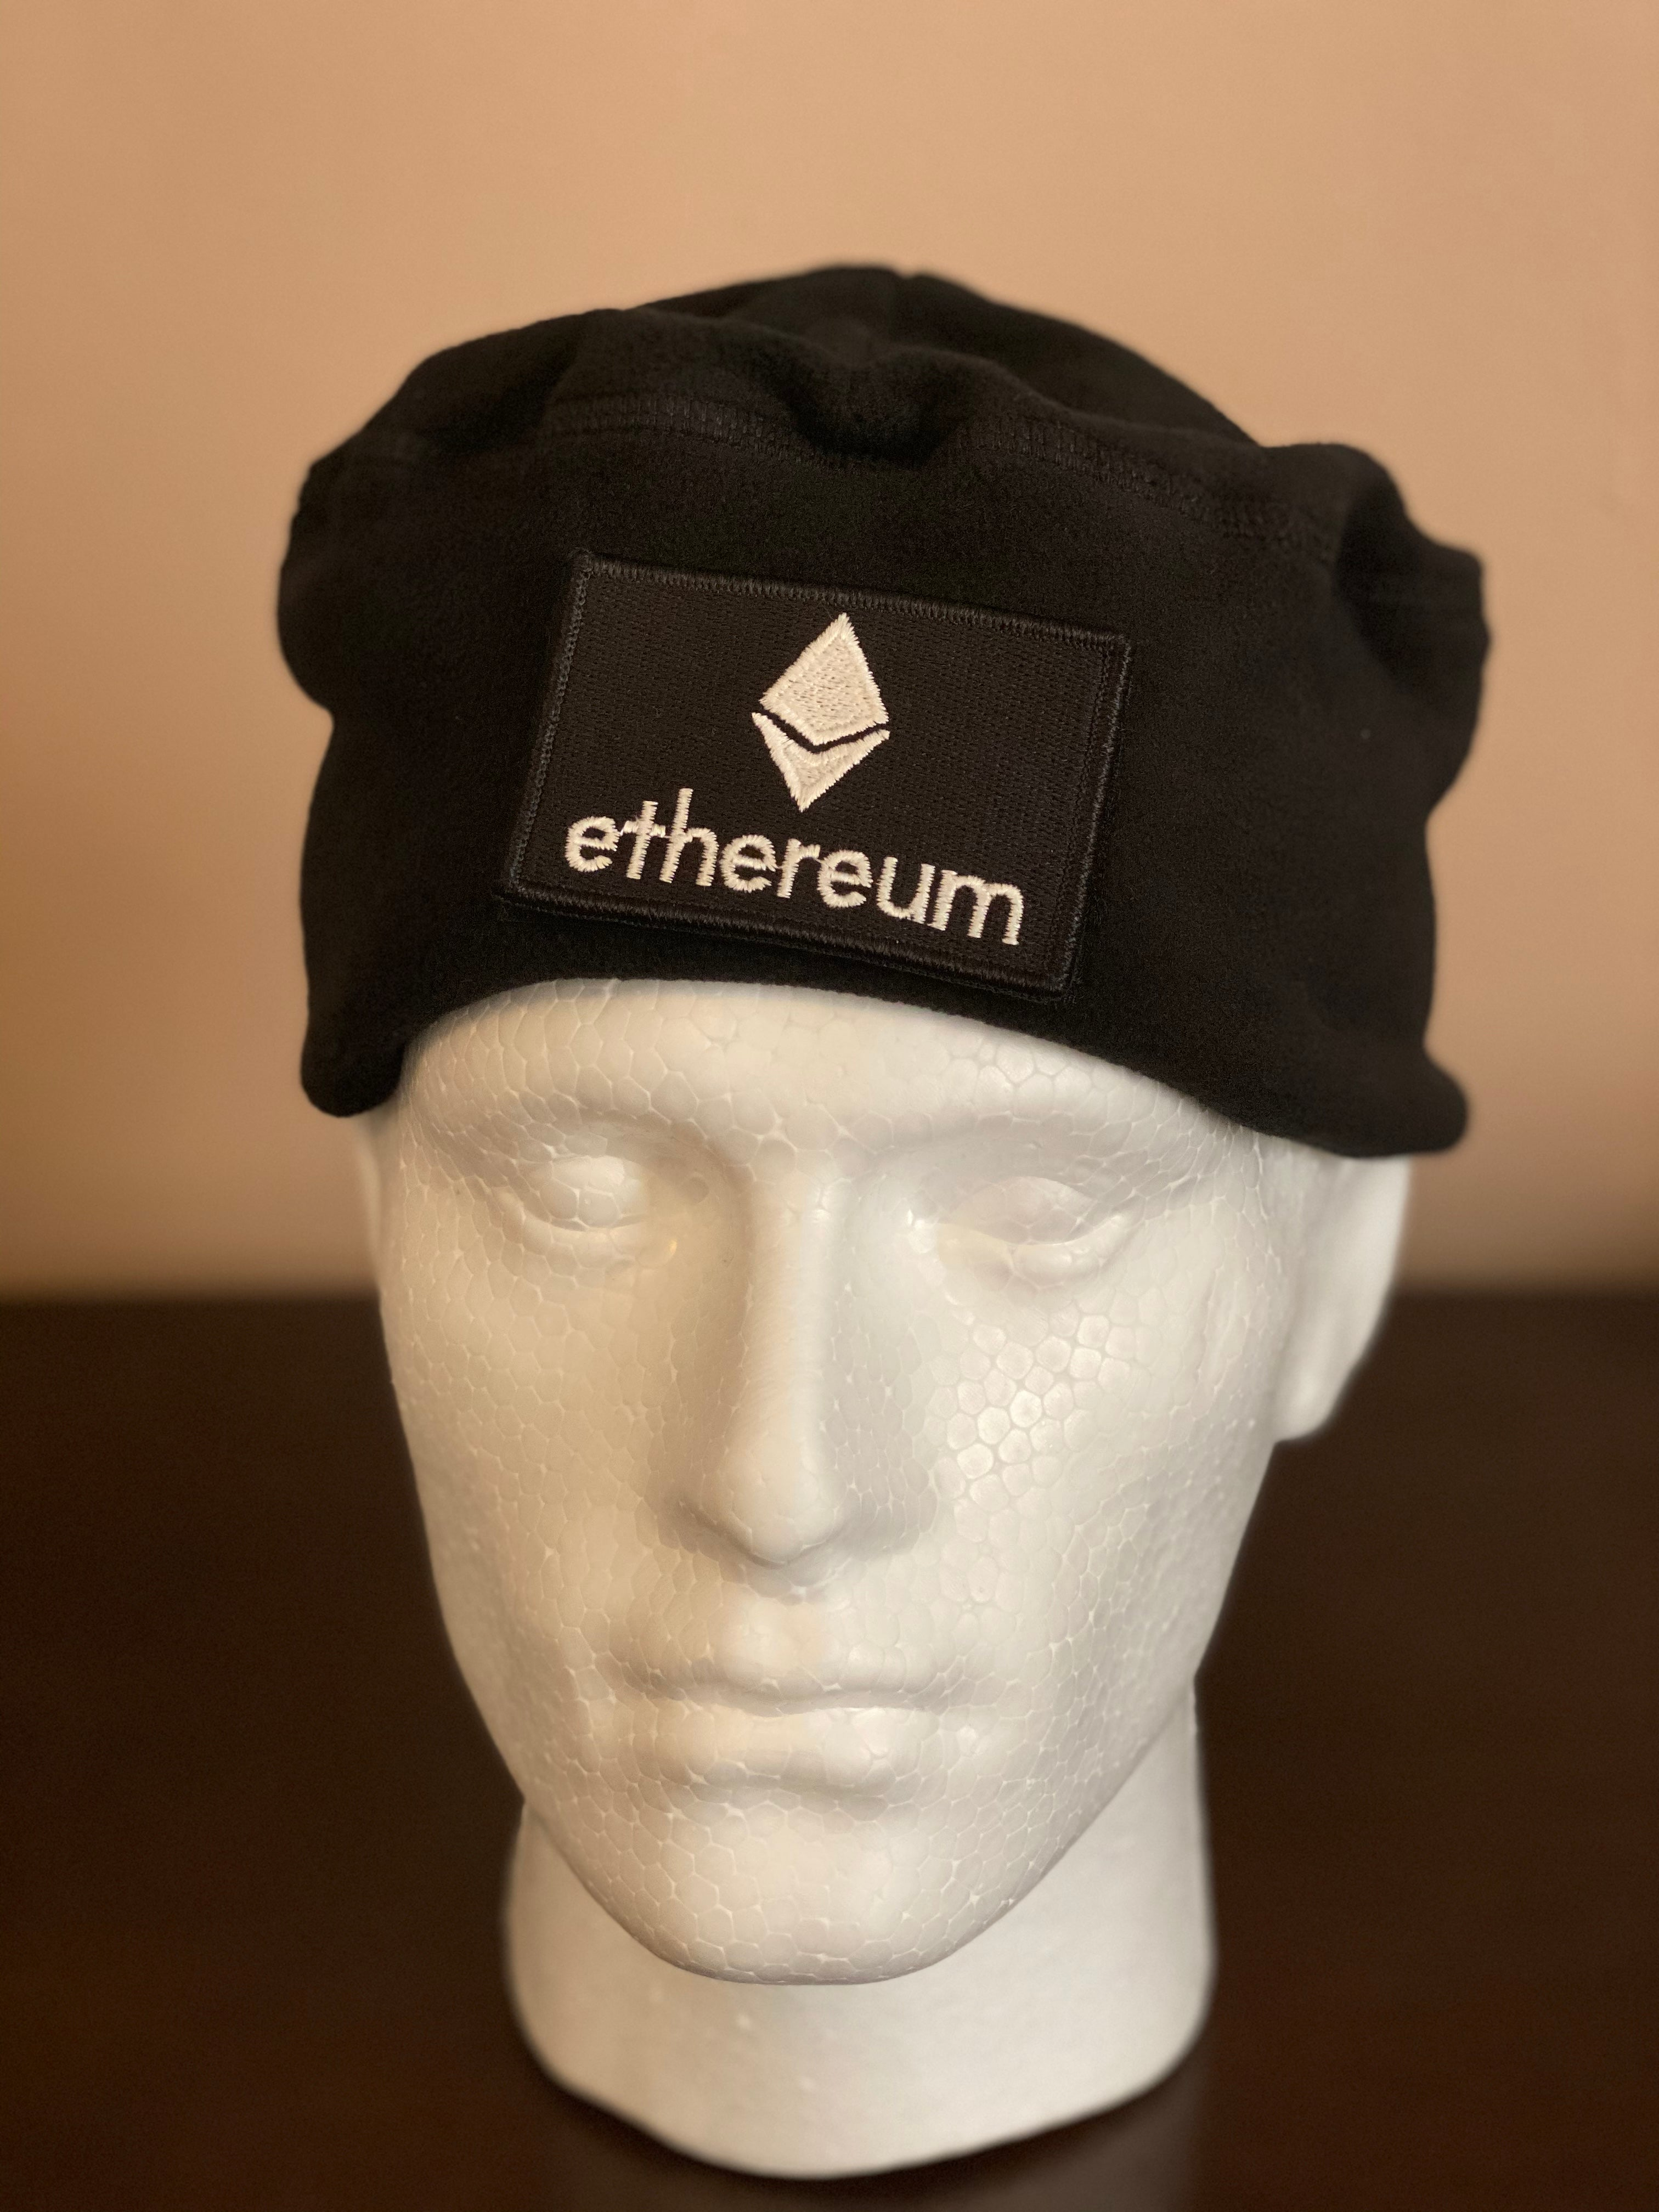 Ethereum Patch and Watch Cap